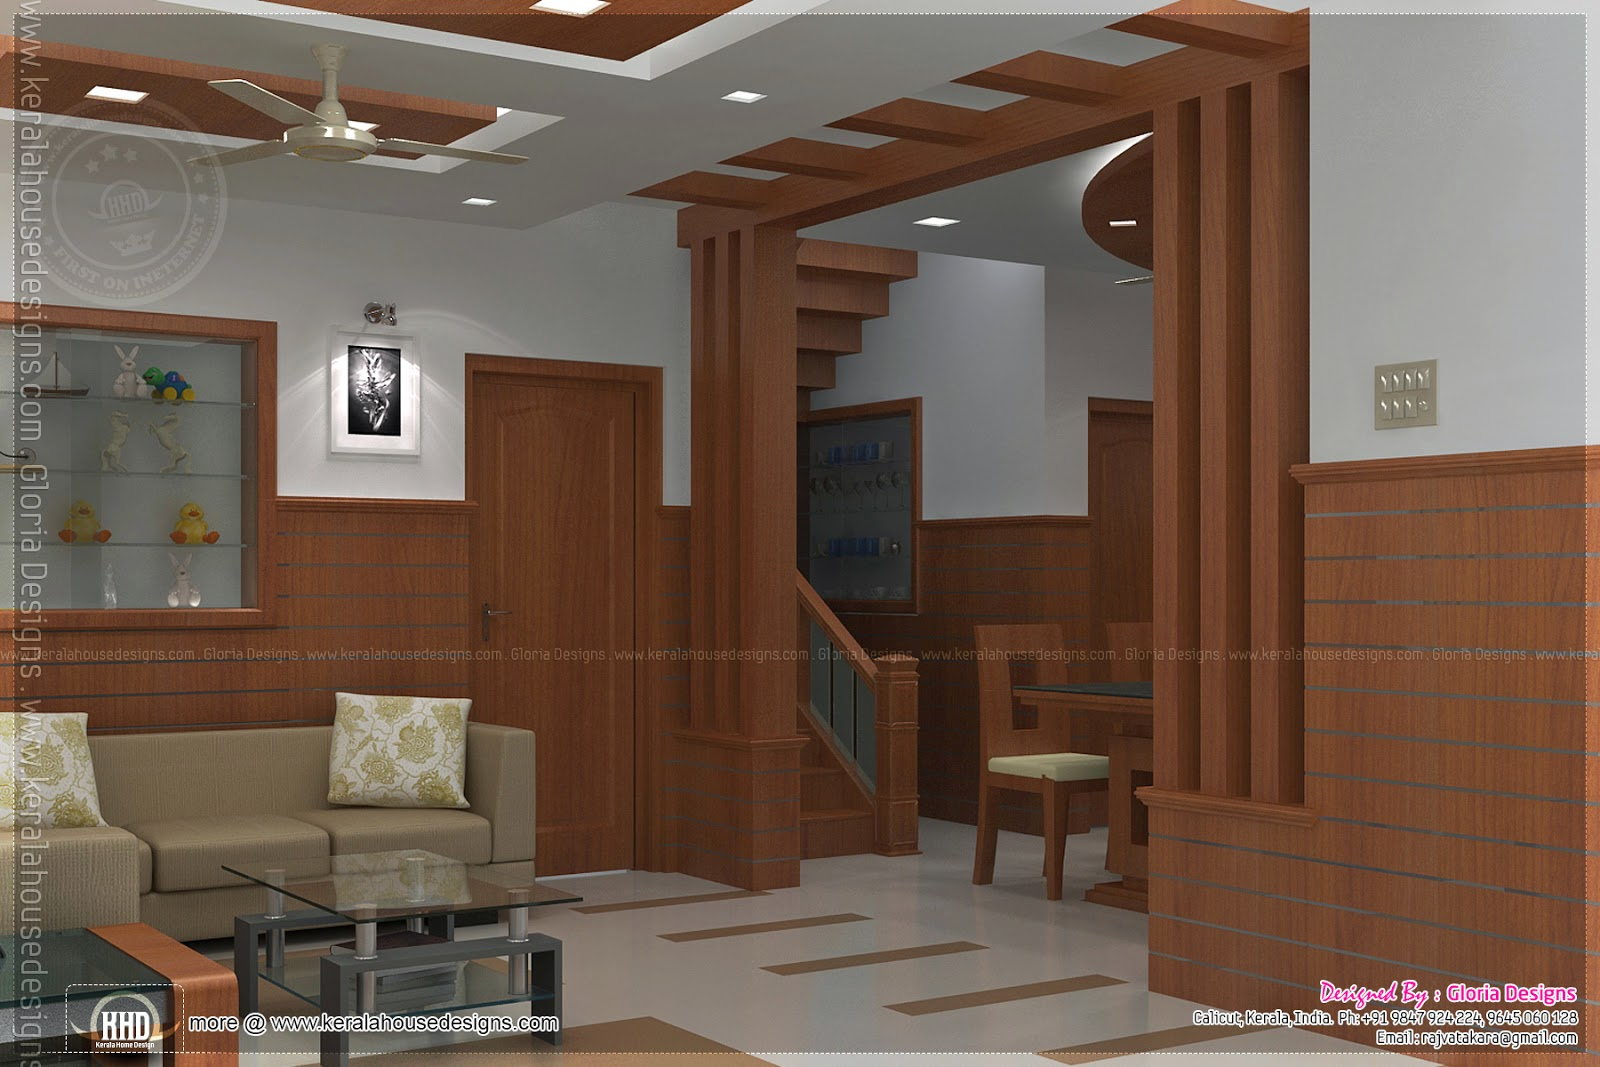 Home interior designs by gloria designs calicut home for Home interior designs in india photos